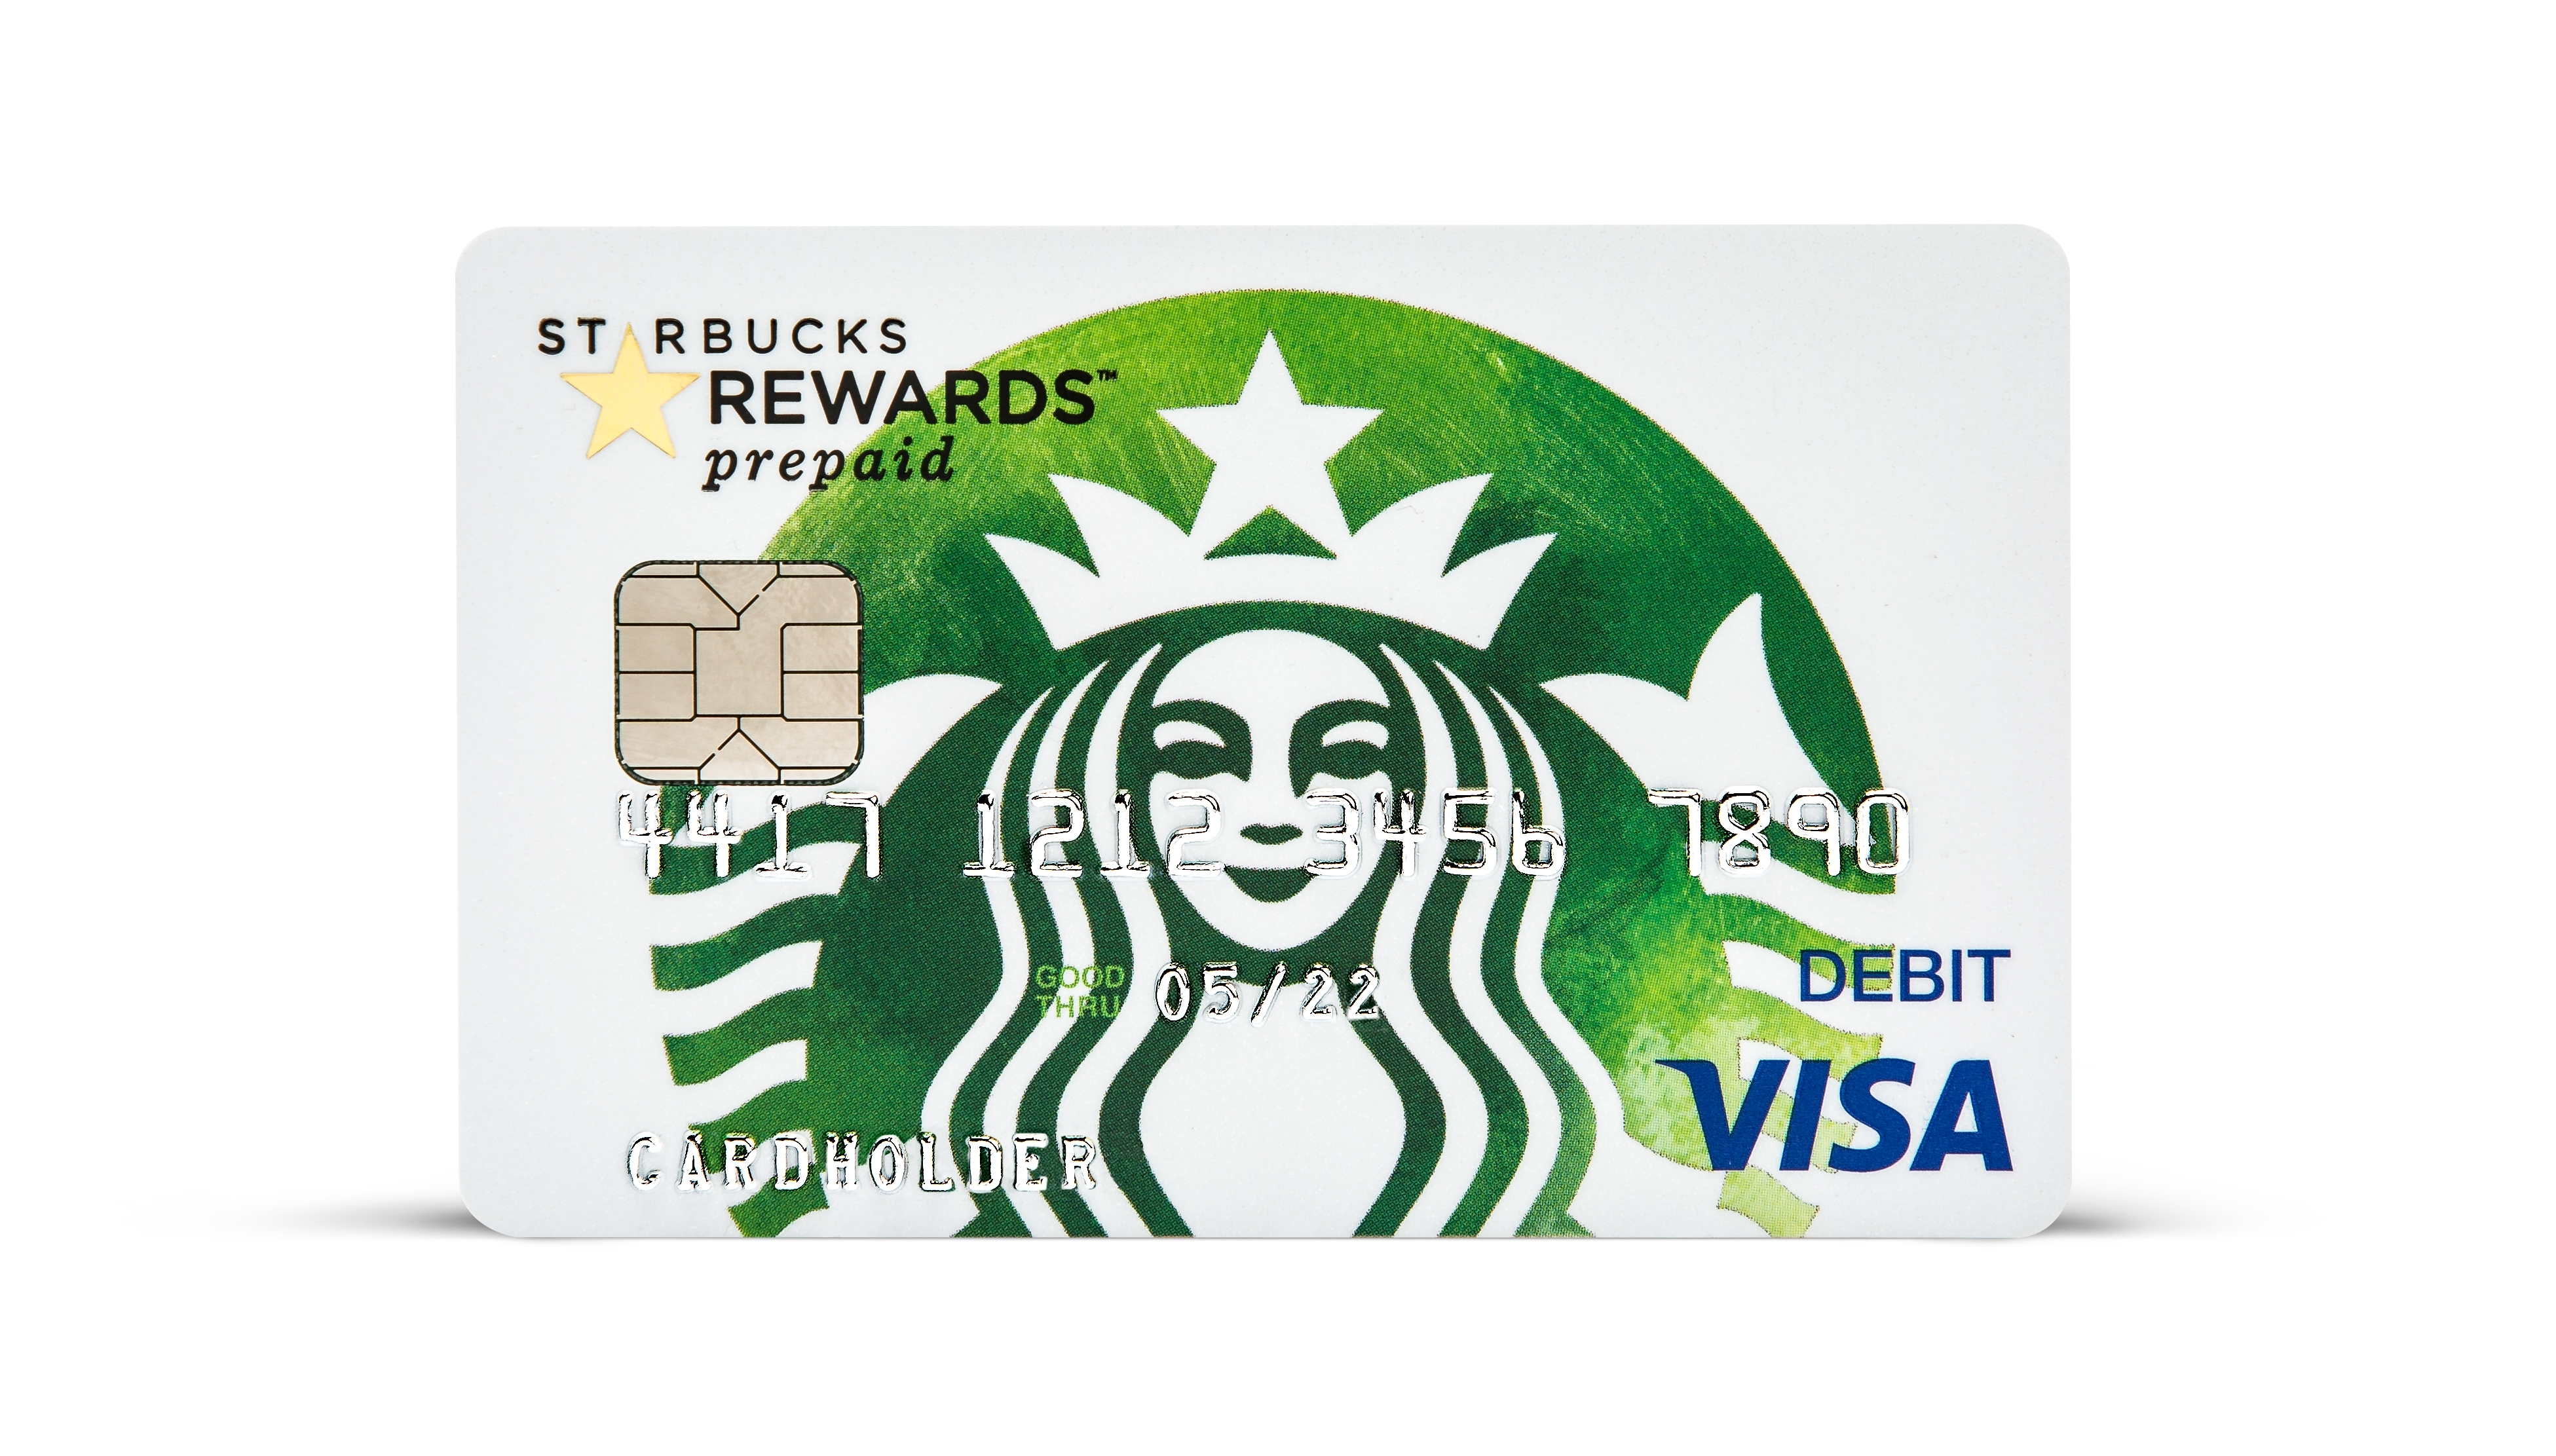 Starbucks And Chase Introduce Starbucks Rewards Visa Prepaid Card Business Wire,Logo Design Freelance Graphic Design Contract Template Pdf